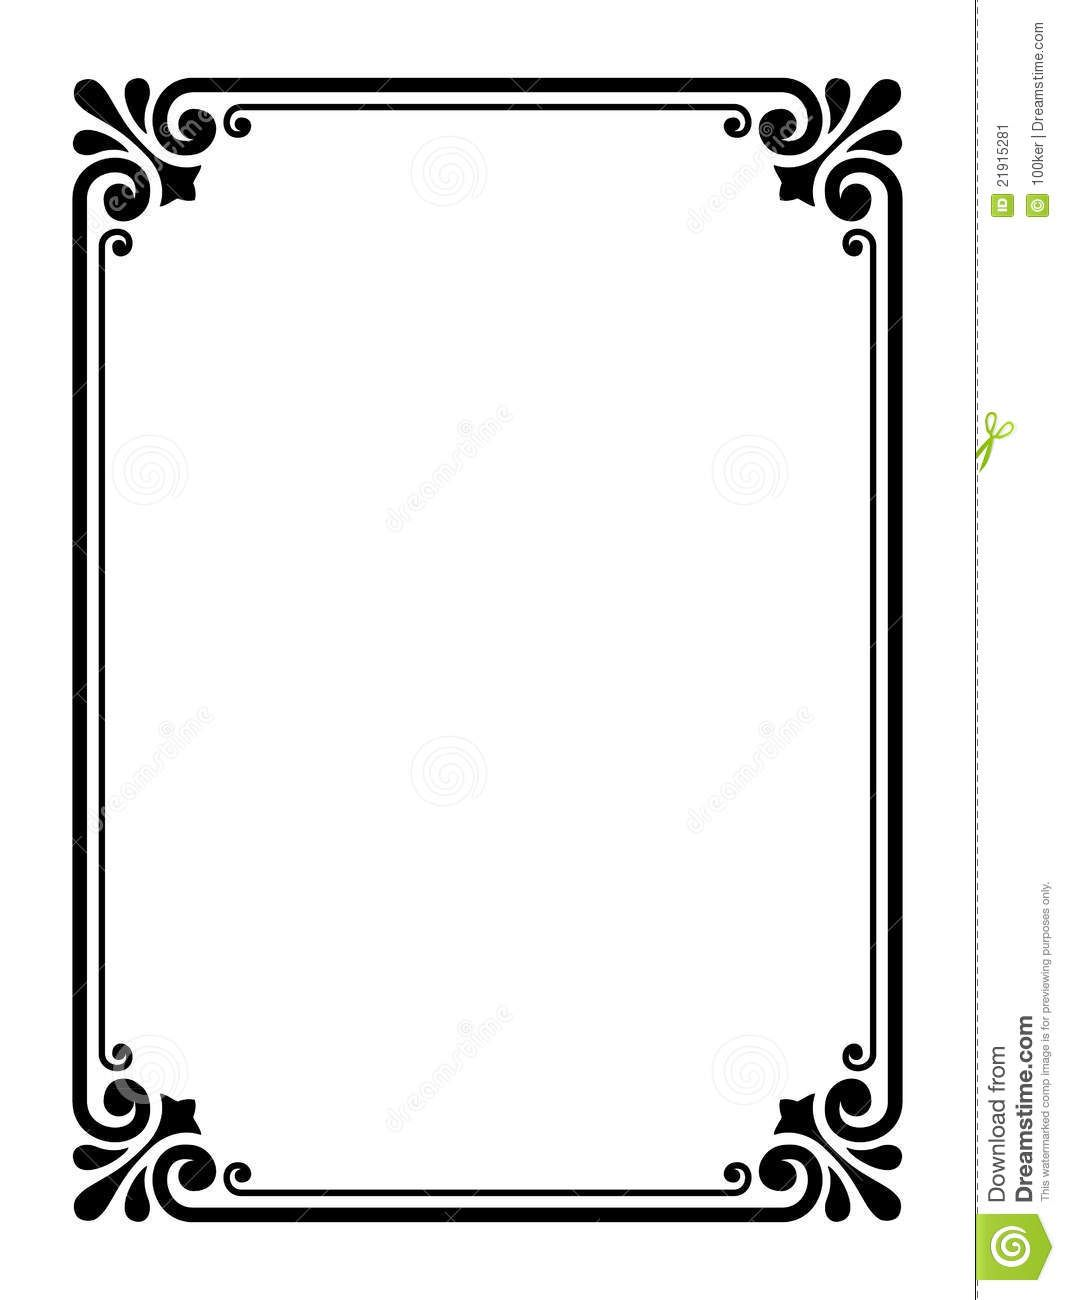 simple frame clipart clipart kid house ideas